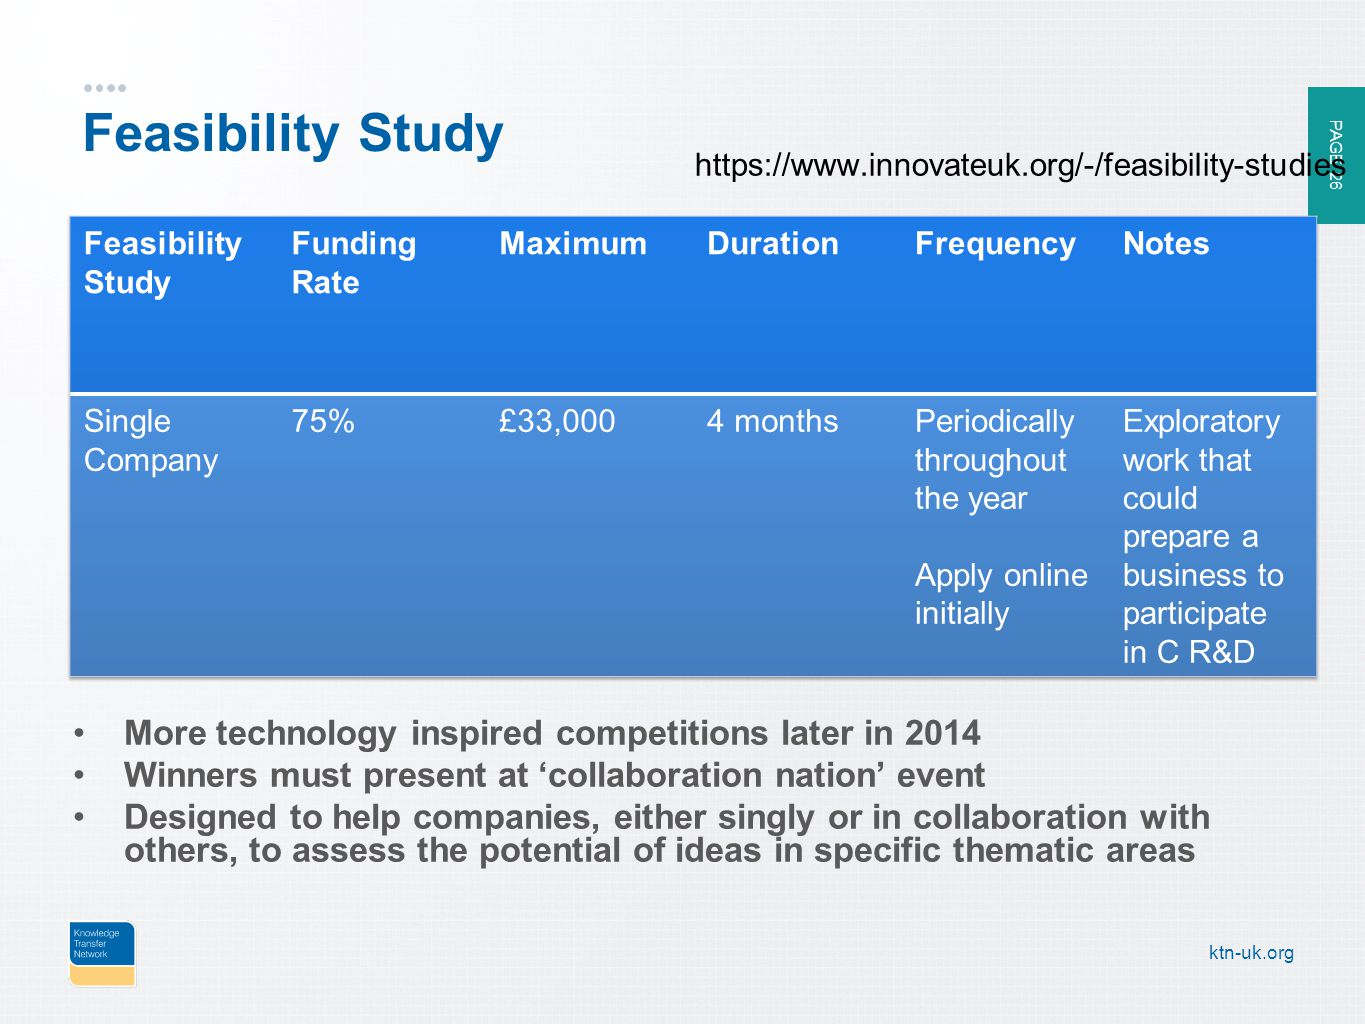 PAGE 26 ktn-uk.org Feasibility Study More technology inspired competitions later in 2014 Winners must present at 'collaboration nation' event Designed to help companies, either singly or in collaboration with others, to assess the potential of ideas in specific thematic areas